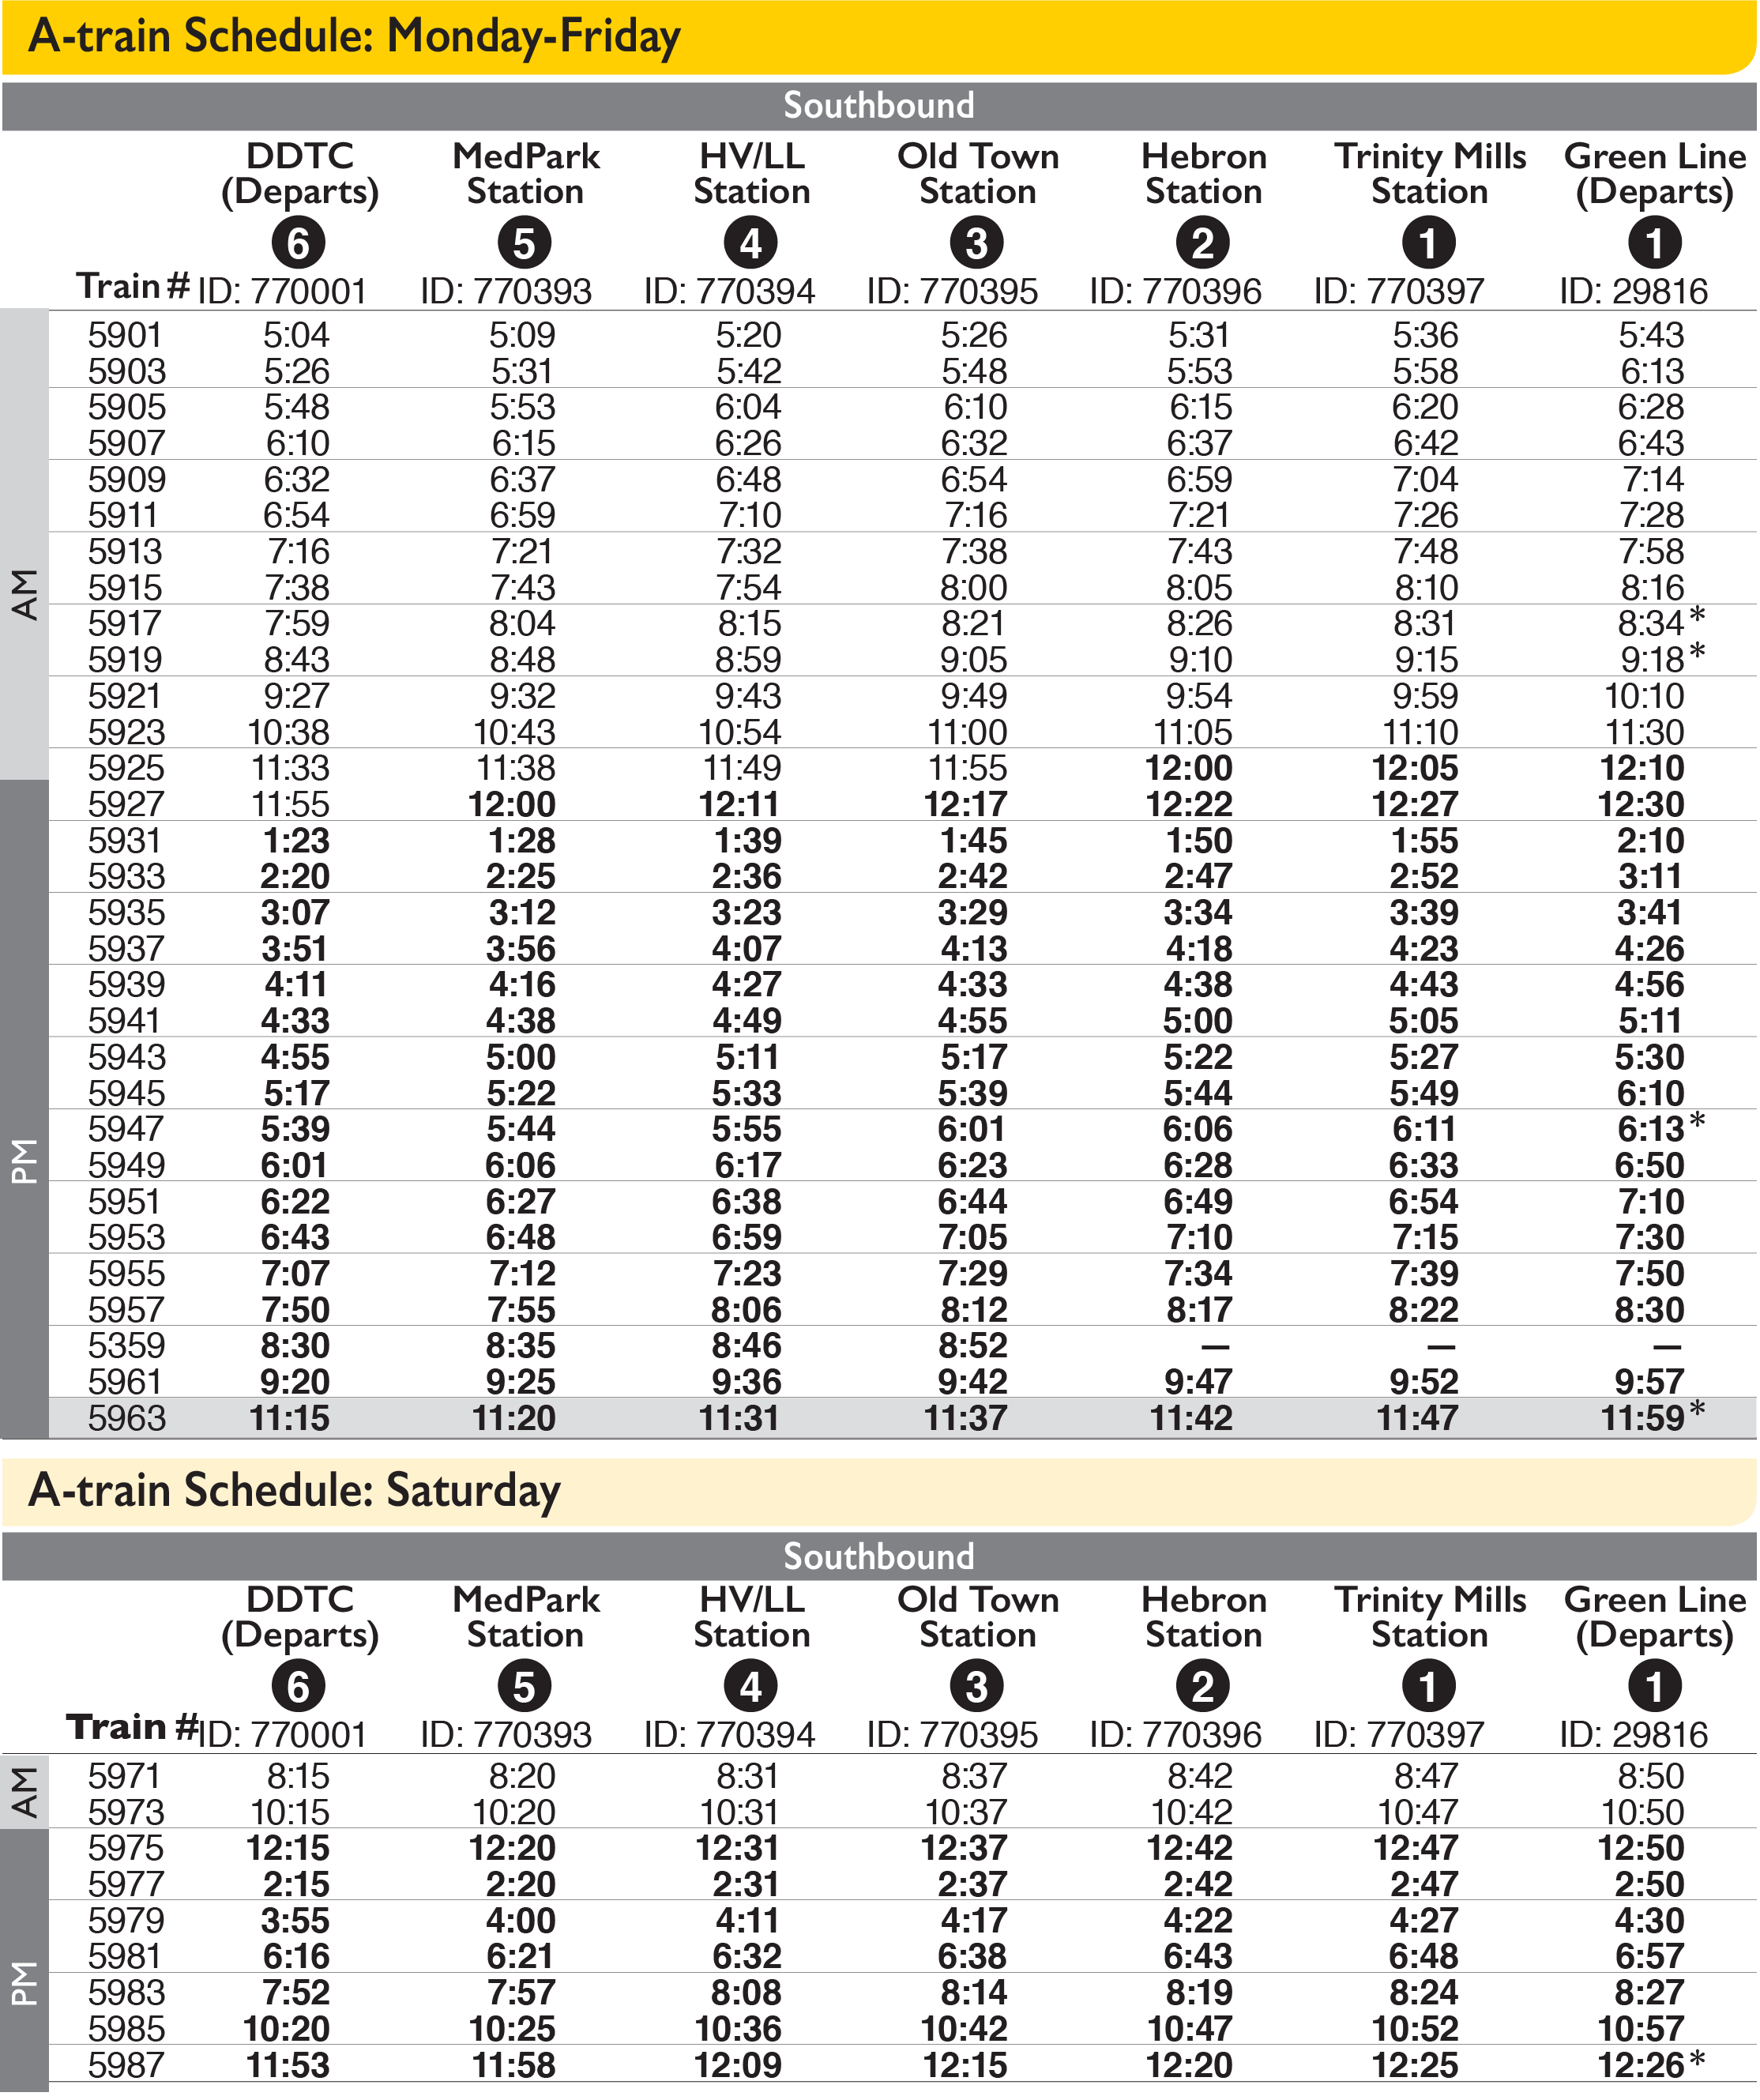 A-train Southbound Schedule